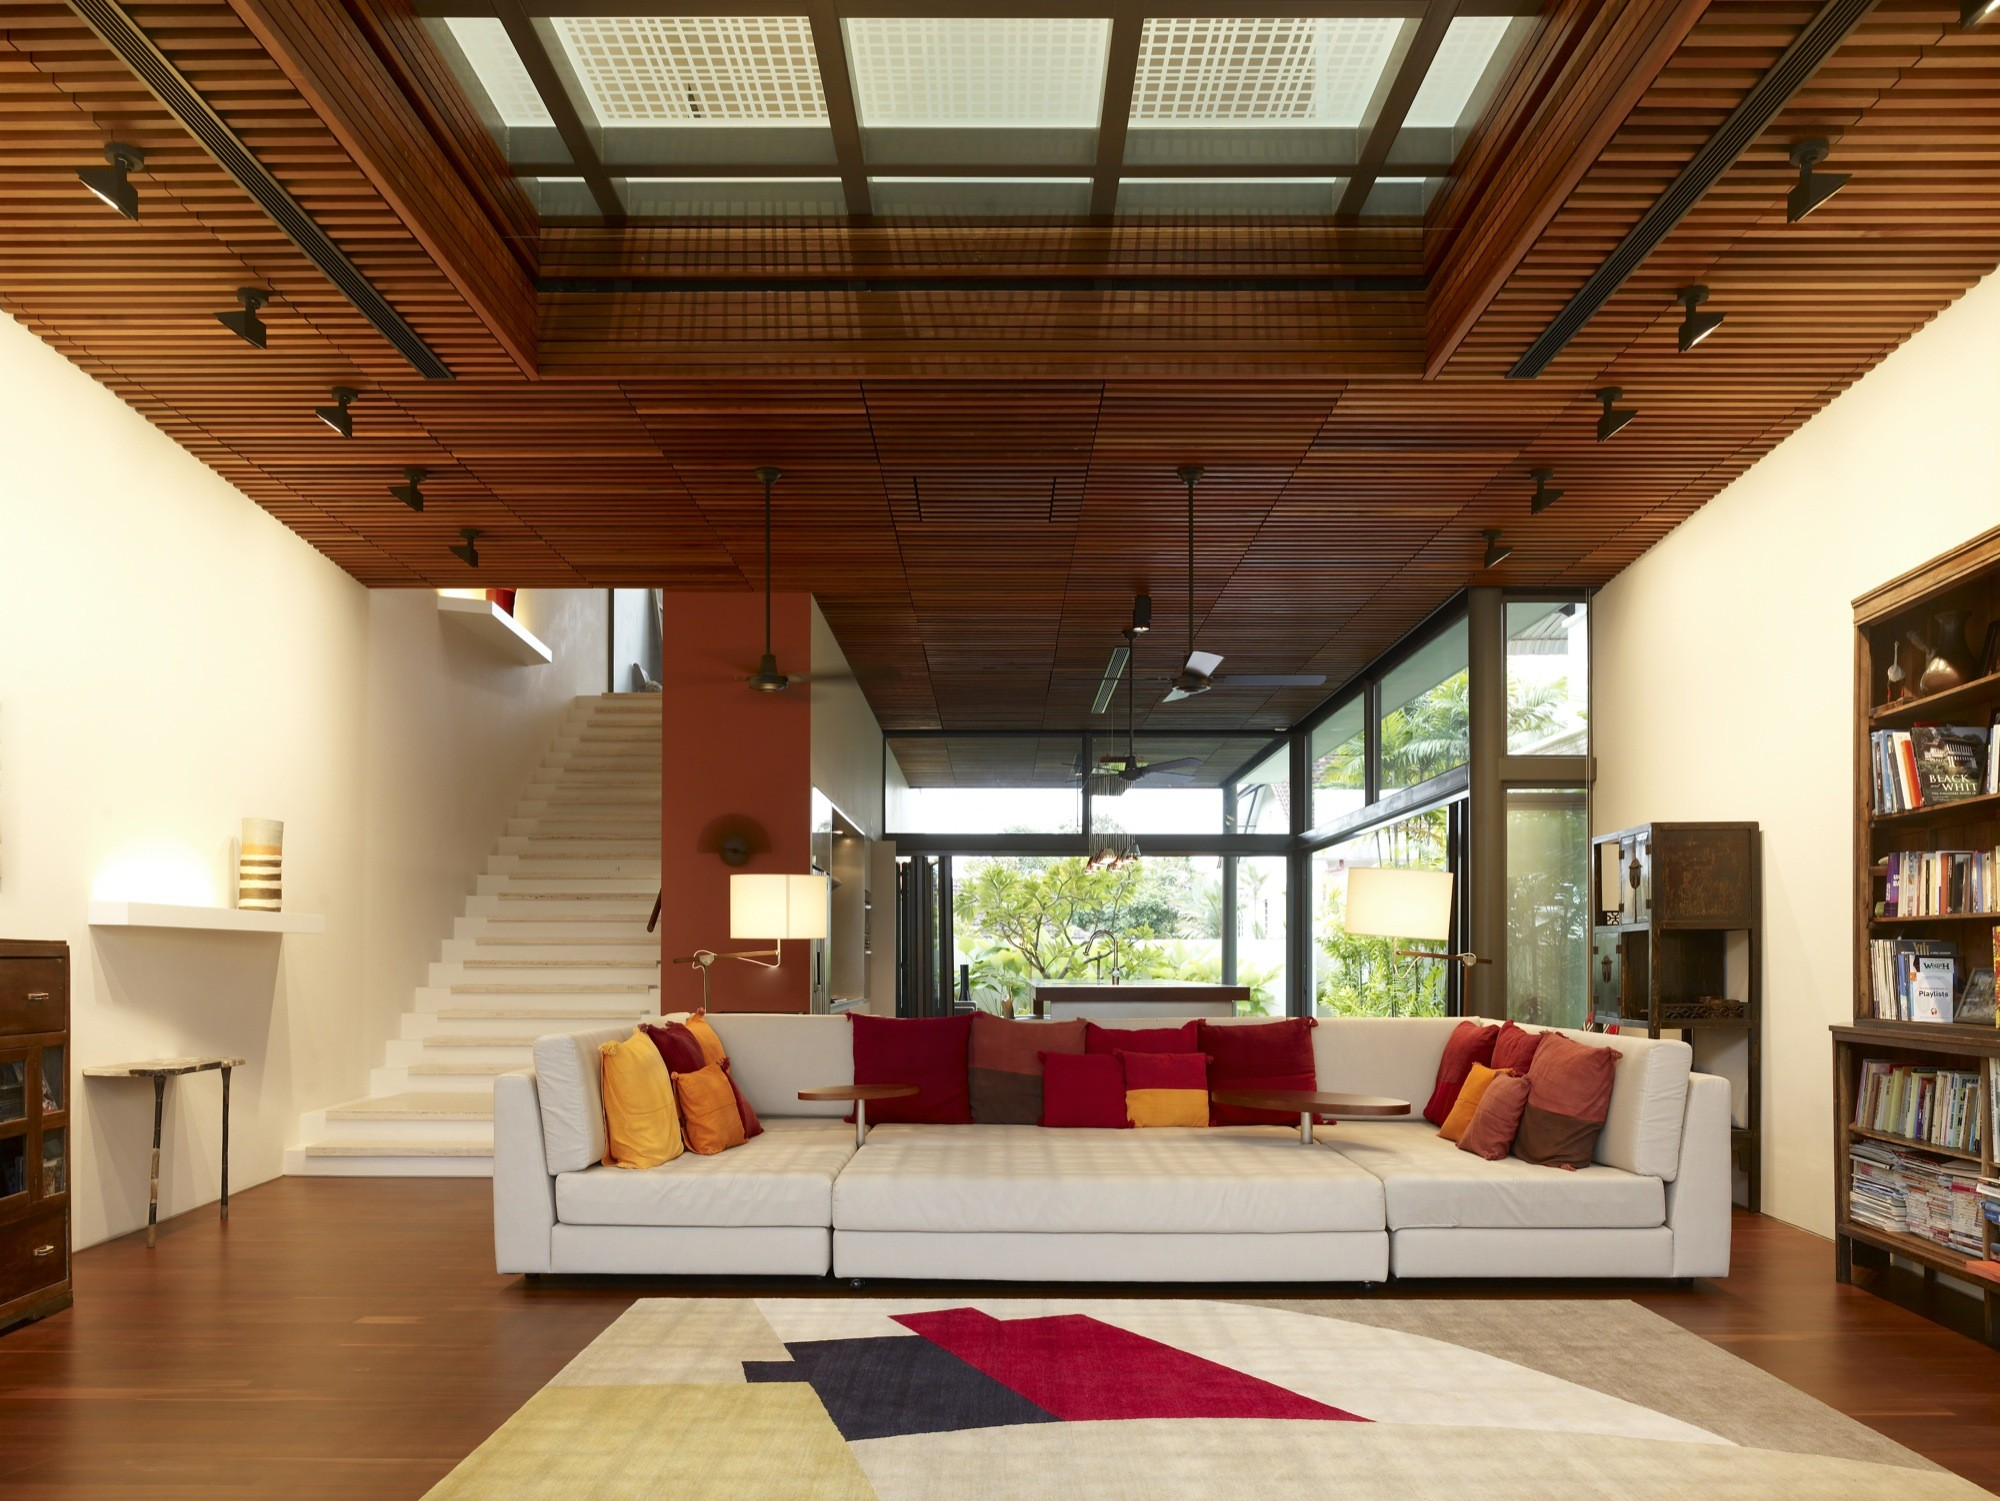 Wooden Ceiling Designs For Living Room Gallery Of Acoustic Alchemy Hyla Architects 3